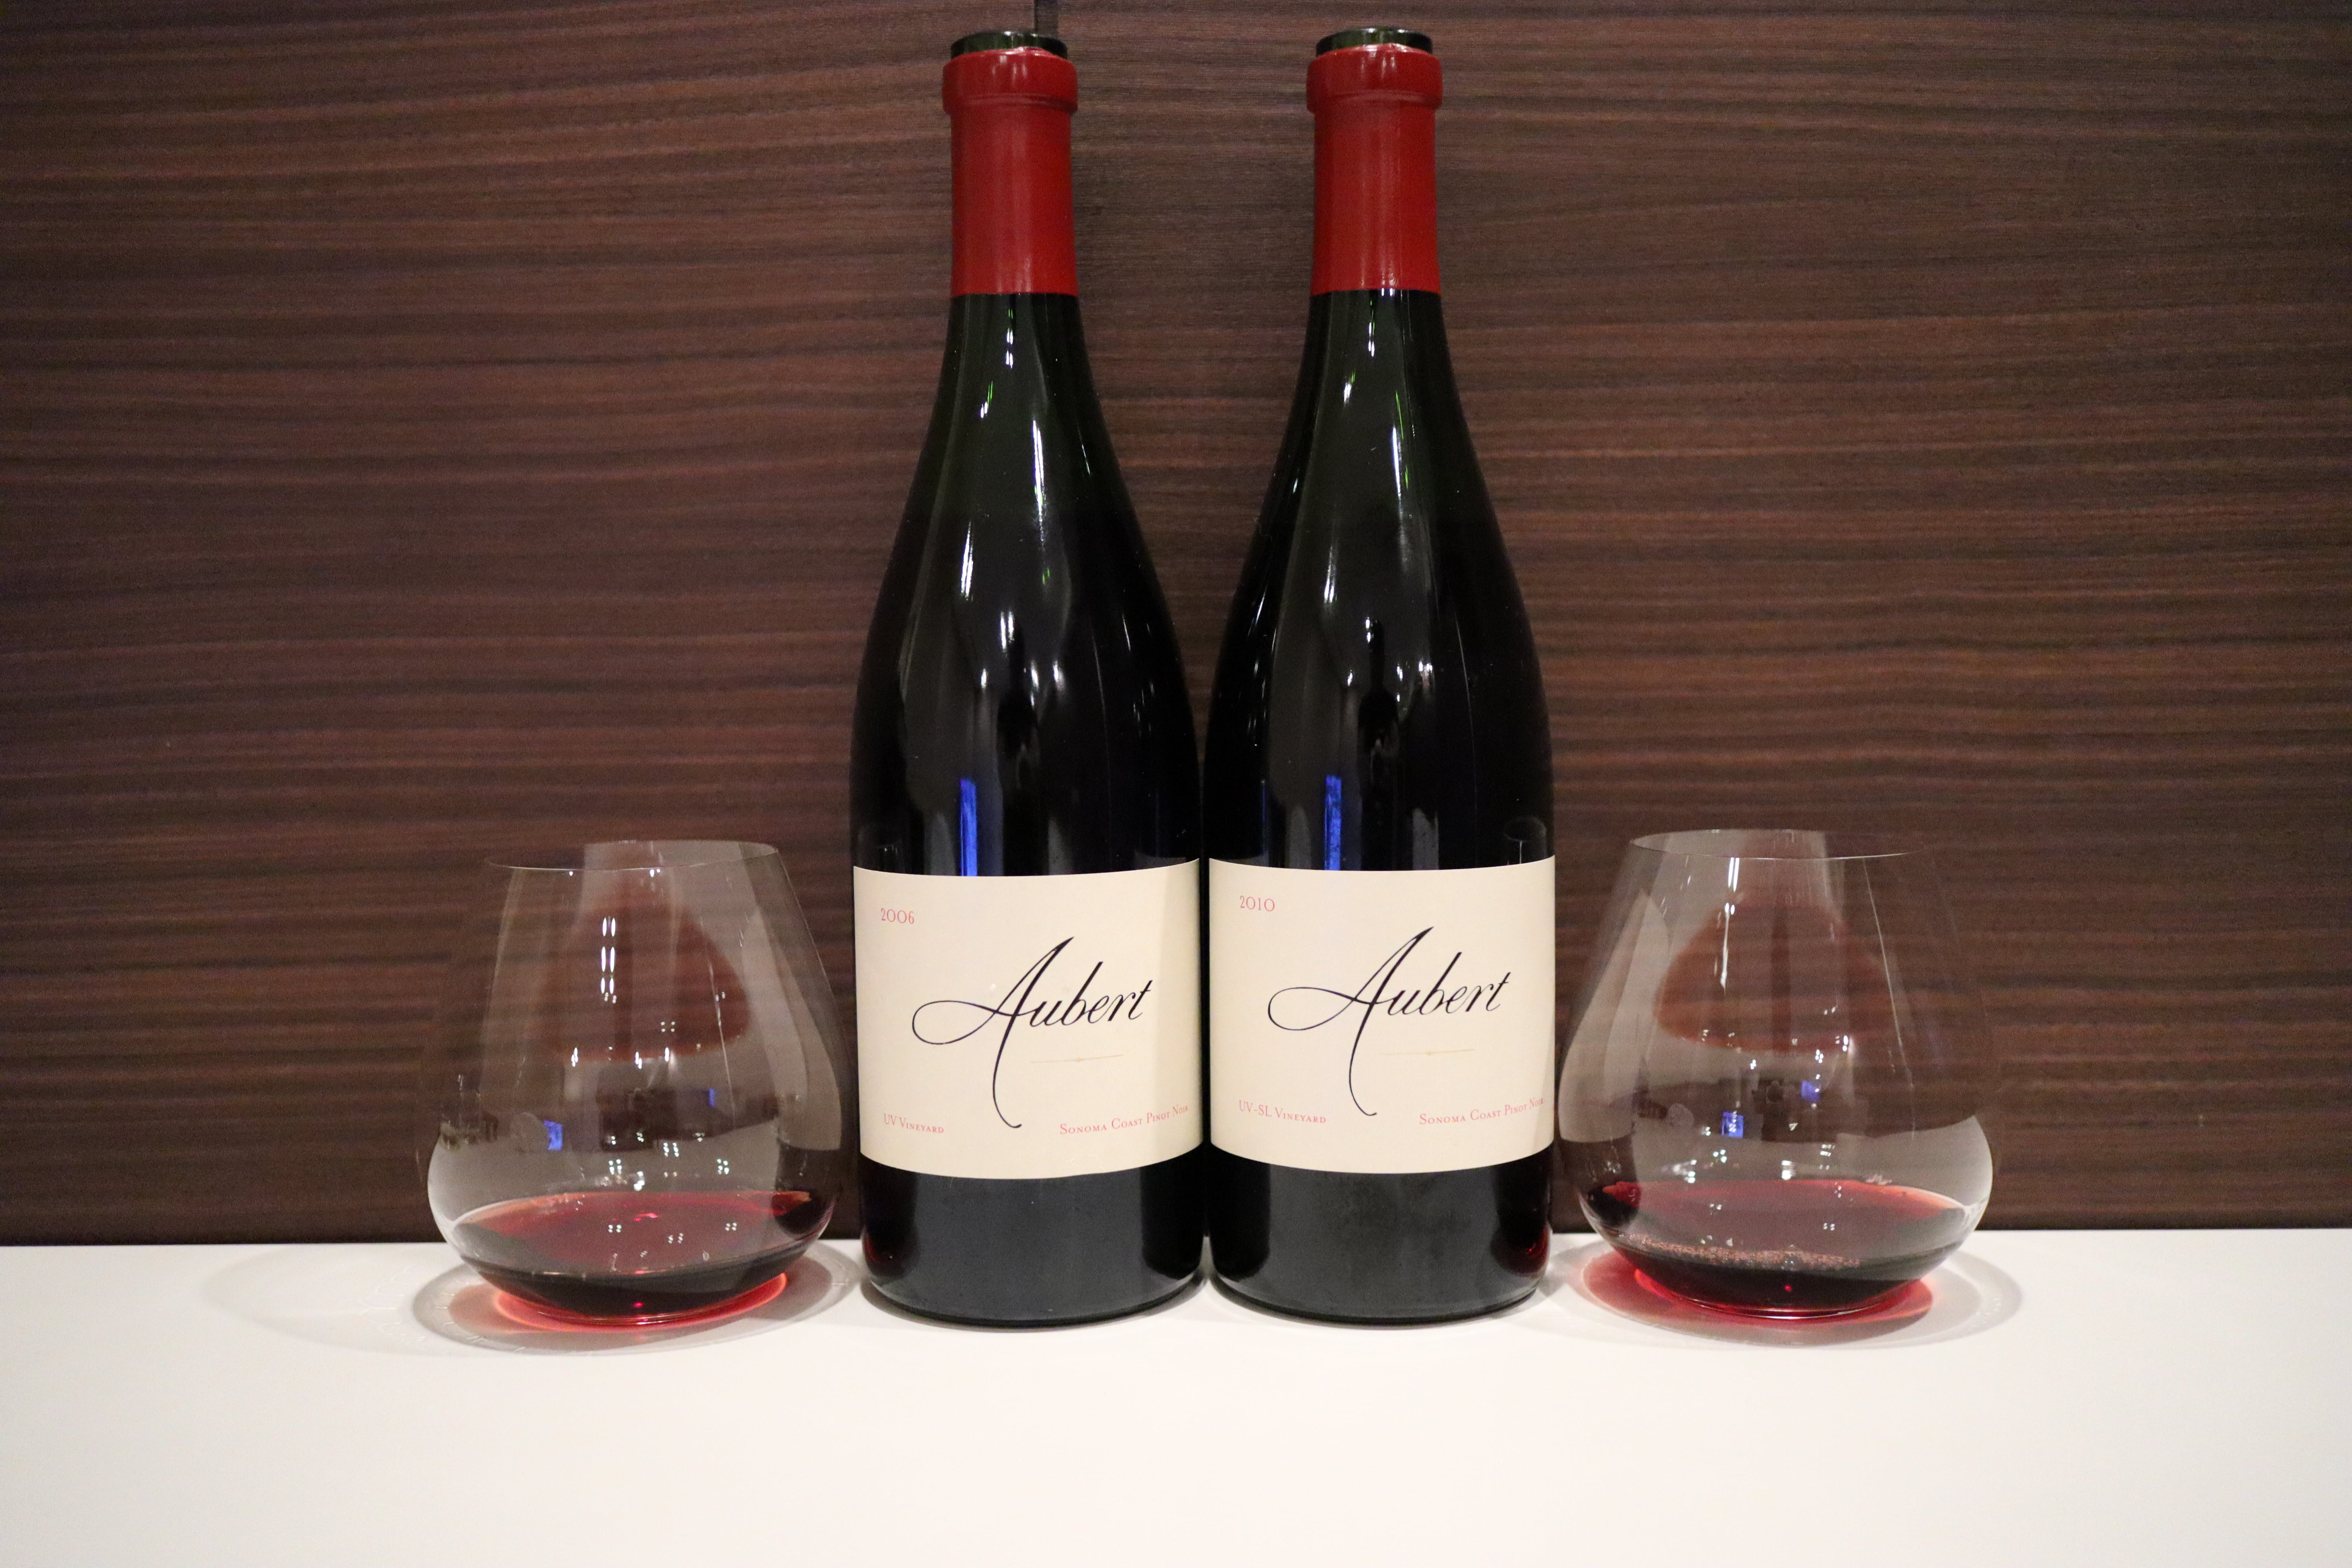 Aubert Vineyards Pinot Noir UV Vineyard 2006 vs UV-SL Vineyard 2010